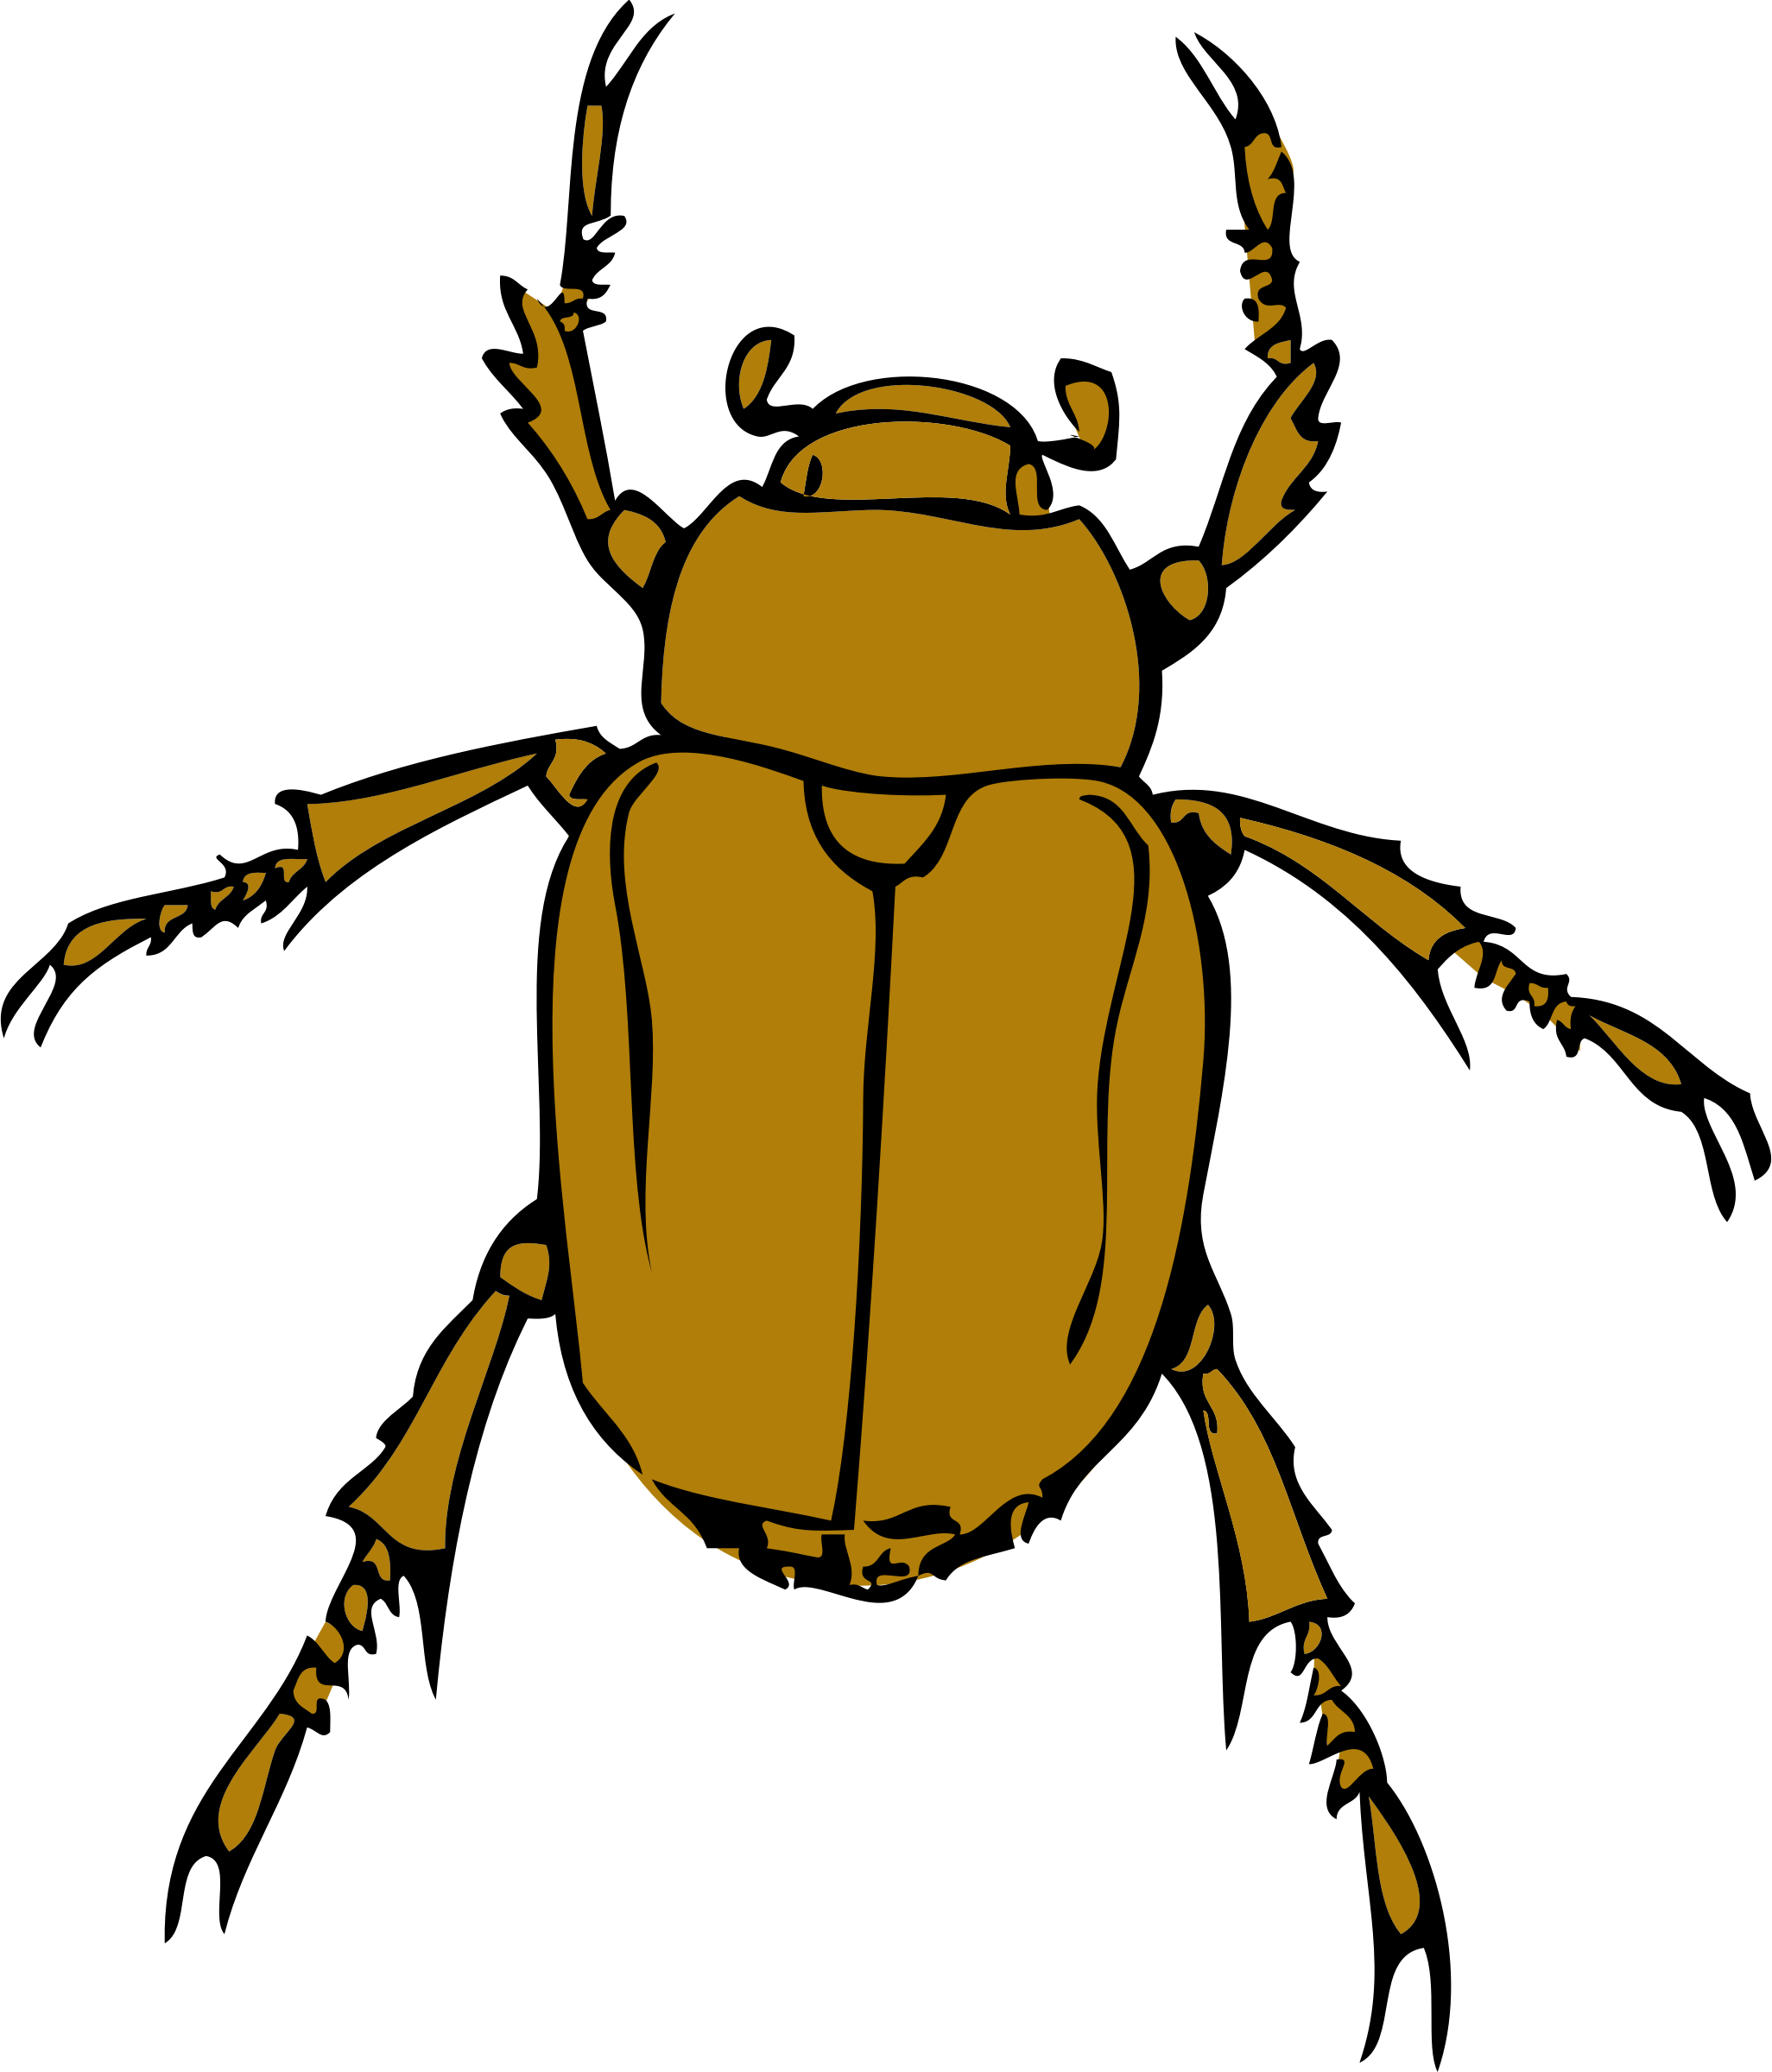 Chafer big image png. Insect clipart bug